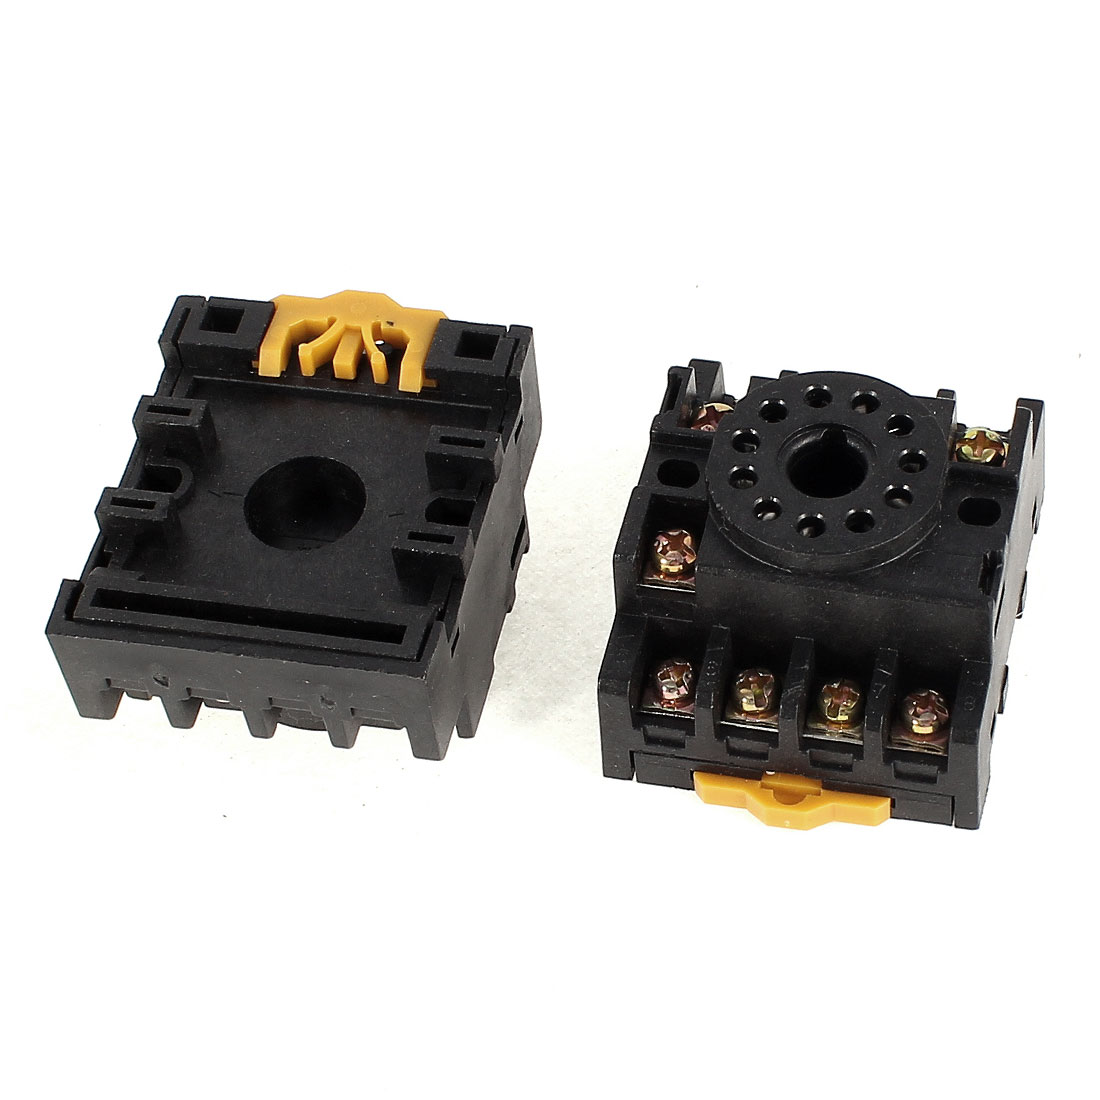 2Pcs PF113A 11 Positions Time Relay Screw Terminal Socket Base 12 Amps 300 Volts for JQX-10F-2Z MK2P